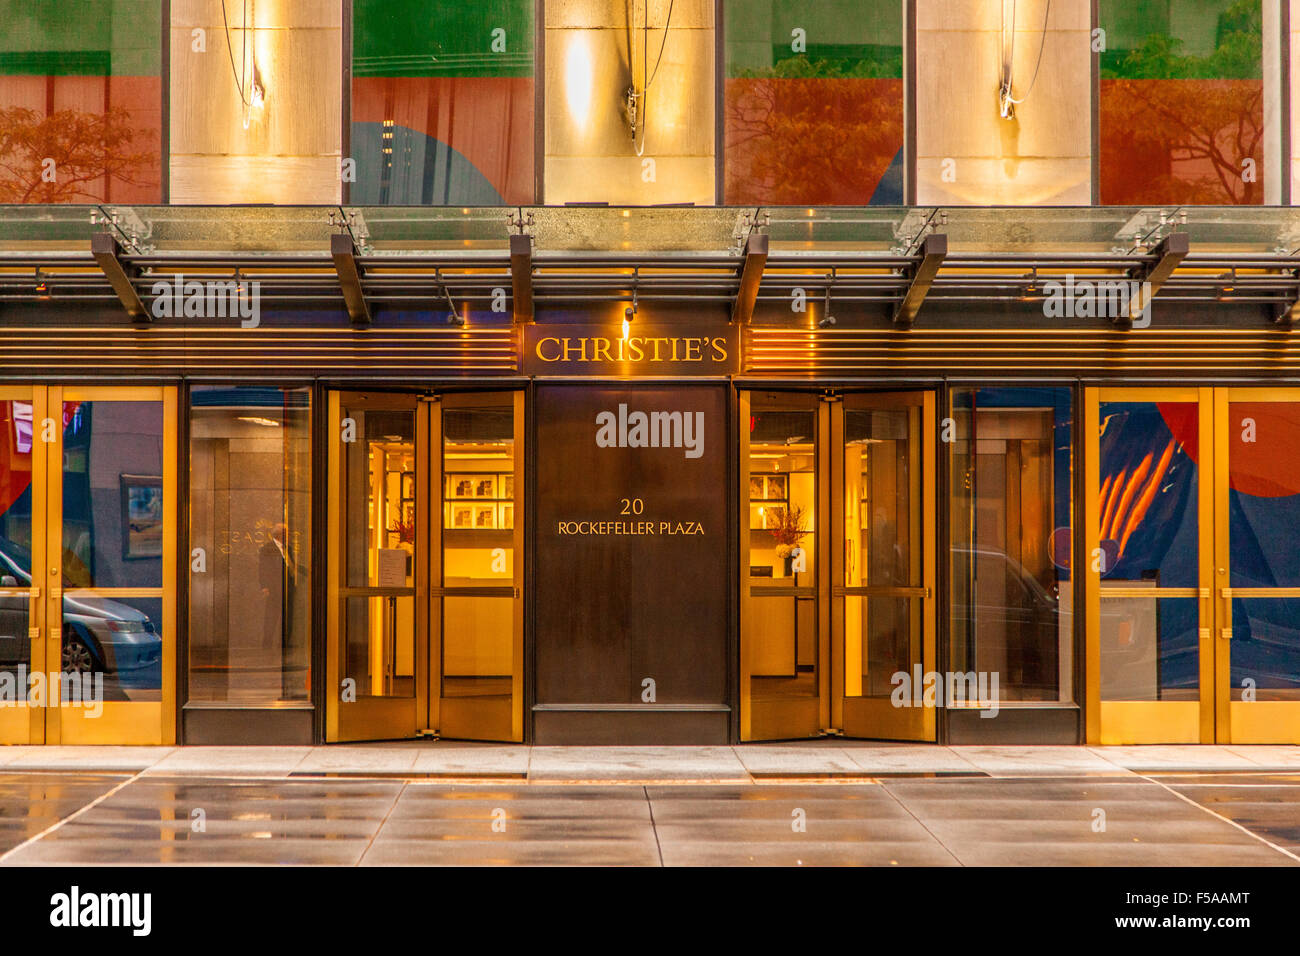 Christie's auction house, Rockefeller Plaza, New York City, United States of America. - Stock Image